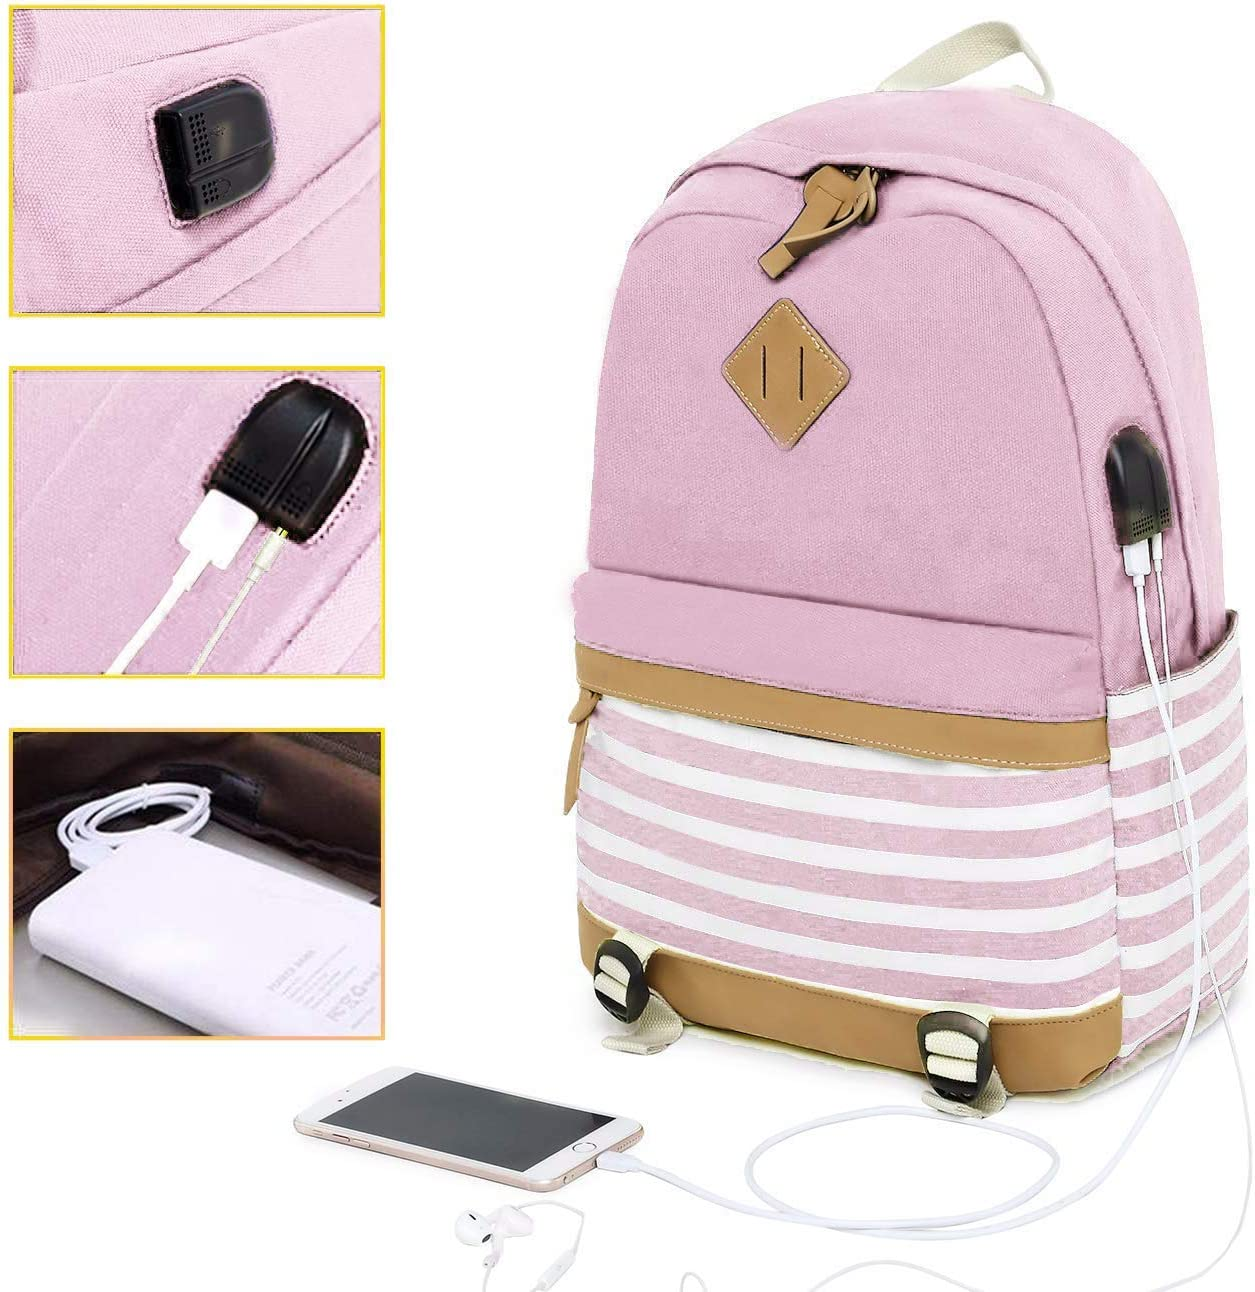 MUTANG Student Bag Shoulder Bag Canvas Backpack Fashion Printing Handbags Middle School Student Bag Striped Canvas Backpack with USB Charging Port